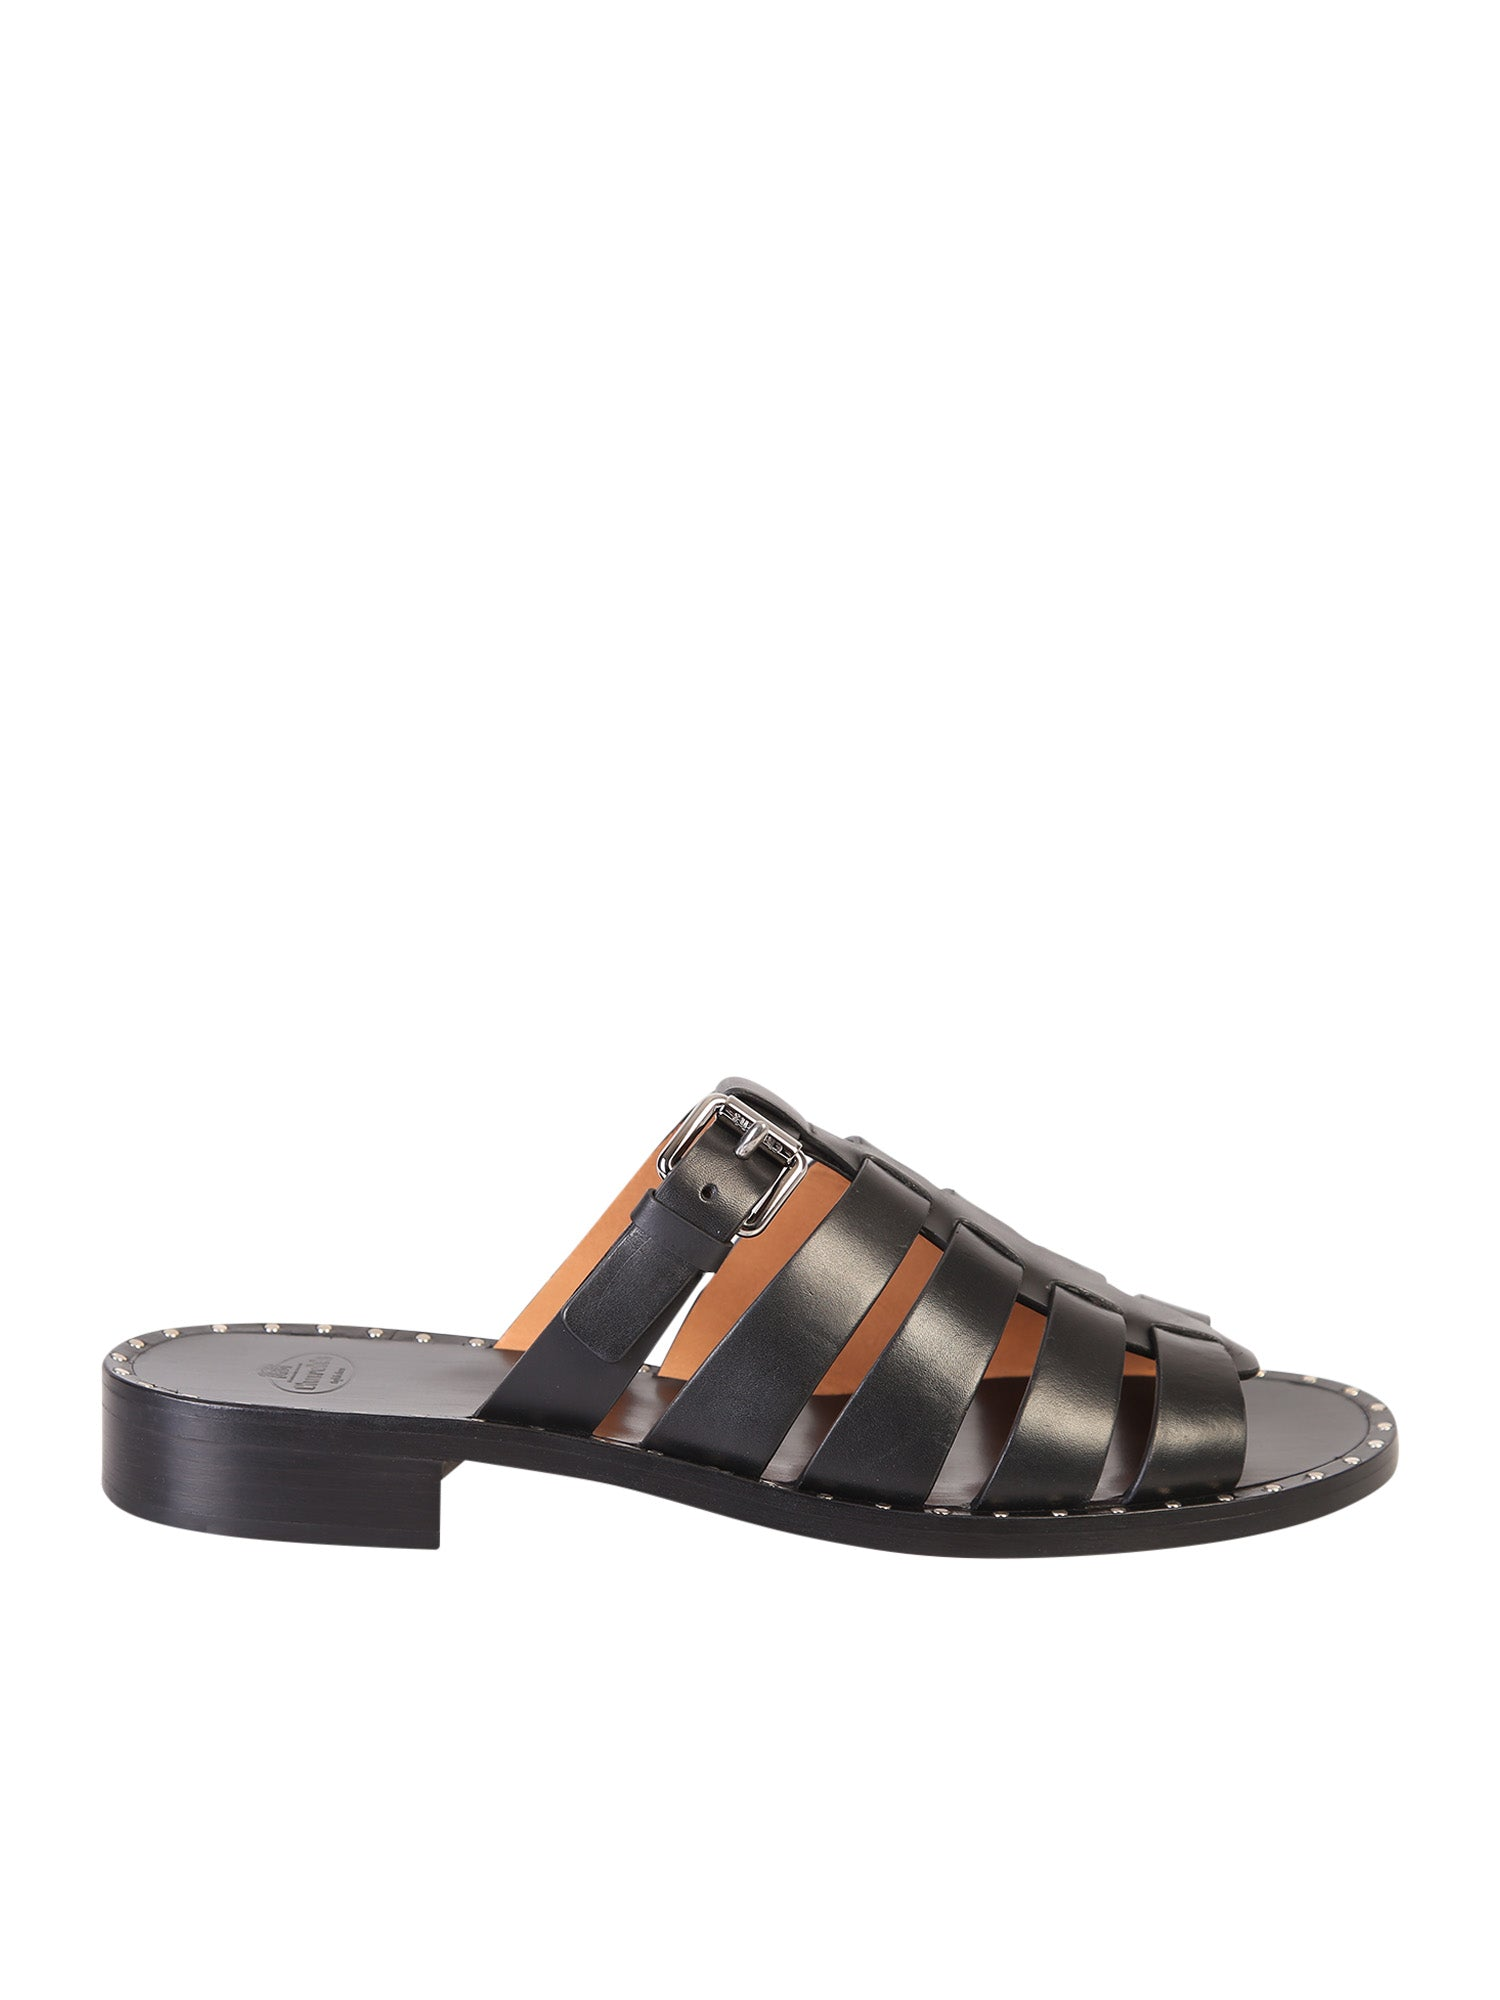 Church's CHURCH'S DORI MONTERIA SANDALS